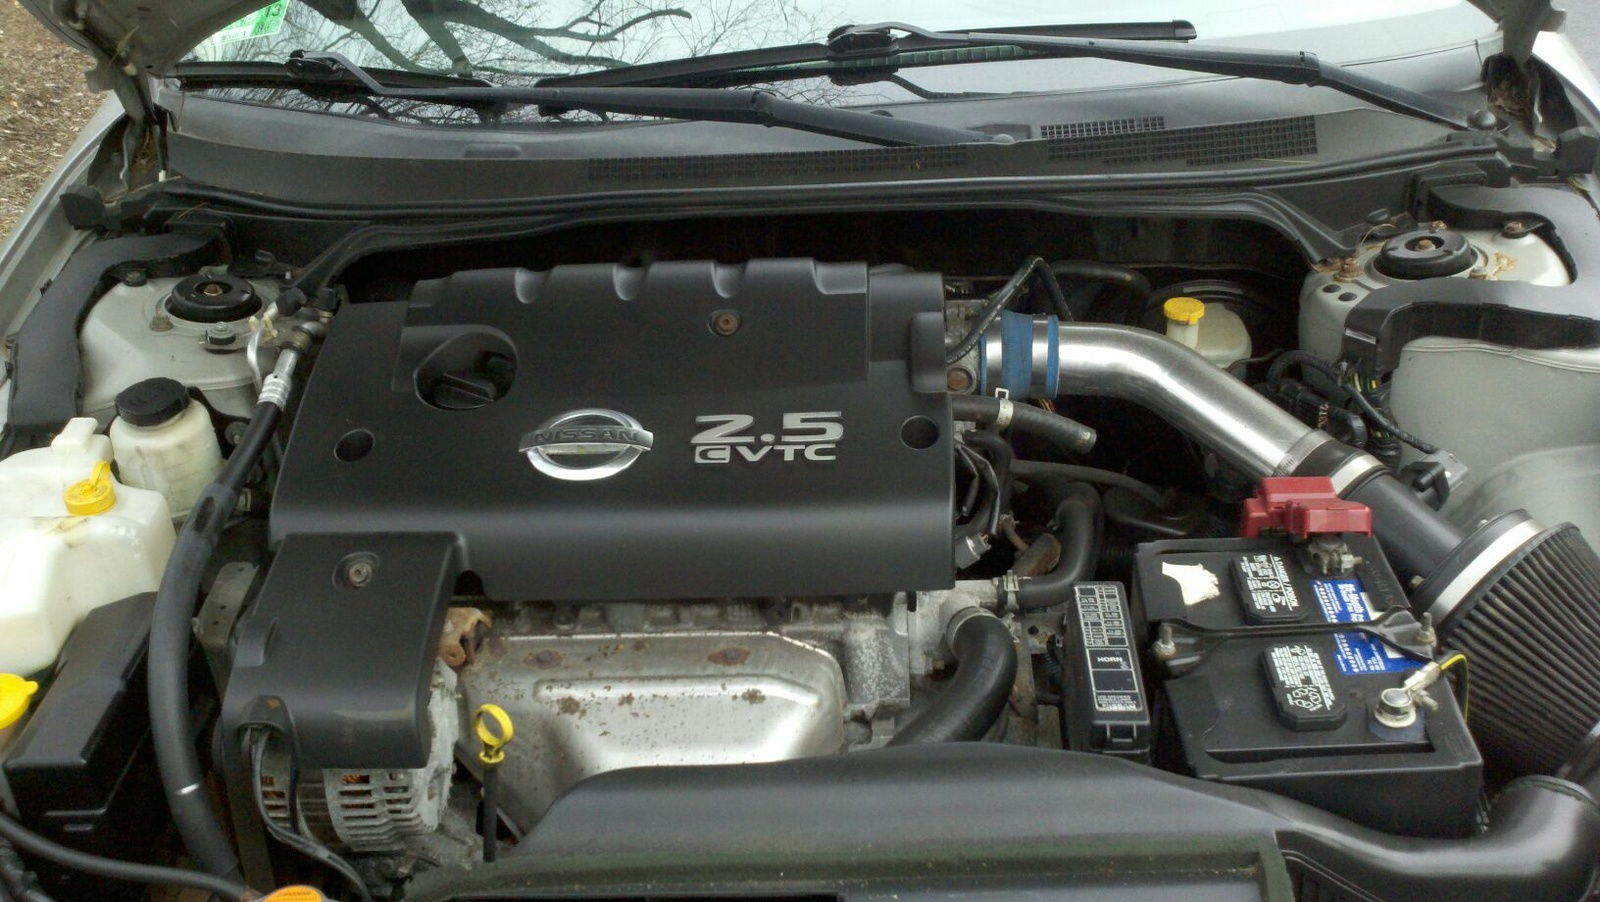 2001 nissan teana engine diagram nissan sentra engine for Motor oil for 2005 nissan altima